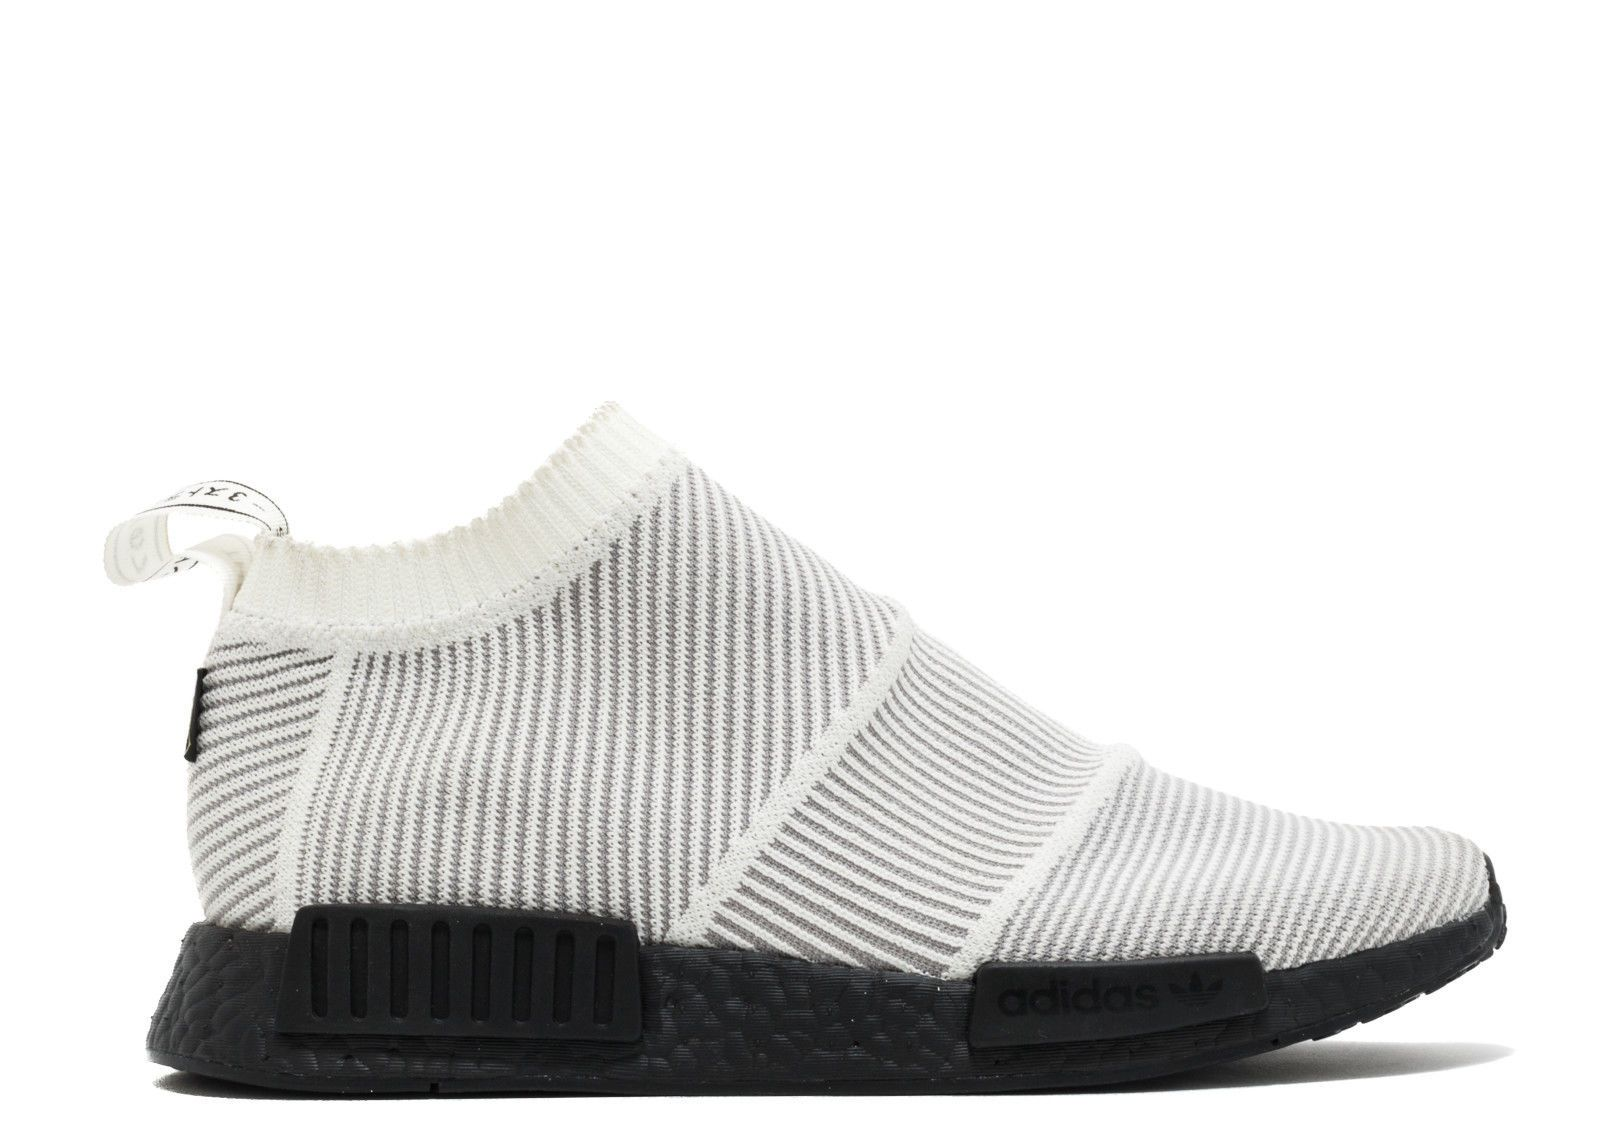 differently 332e9 ccb79 NEW Adidas NMD CS1 Goretex gtx city sock cs2 black white boost primeknit  BY9404